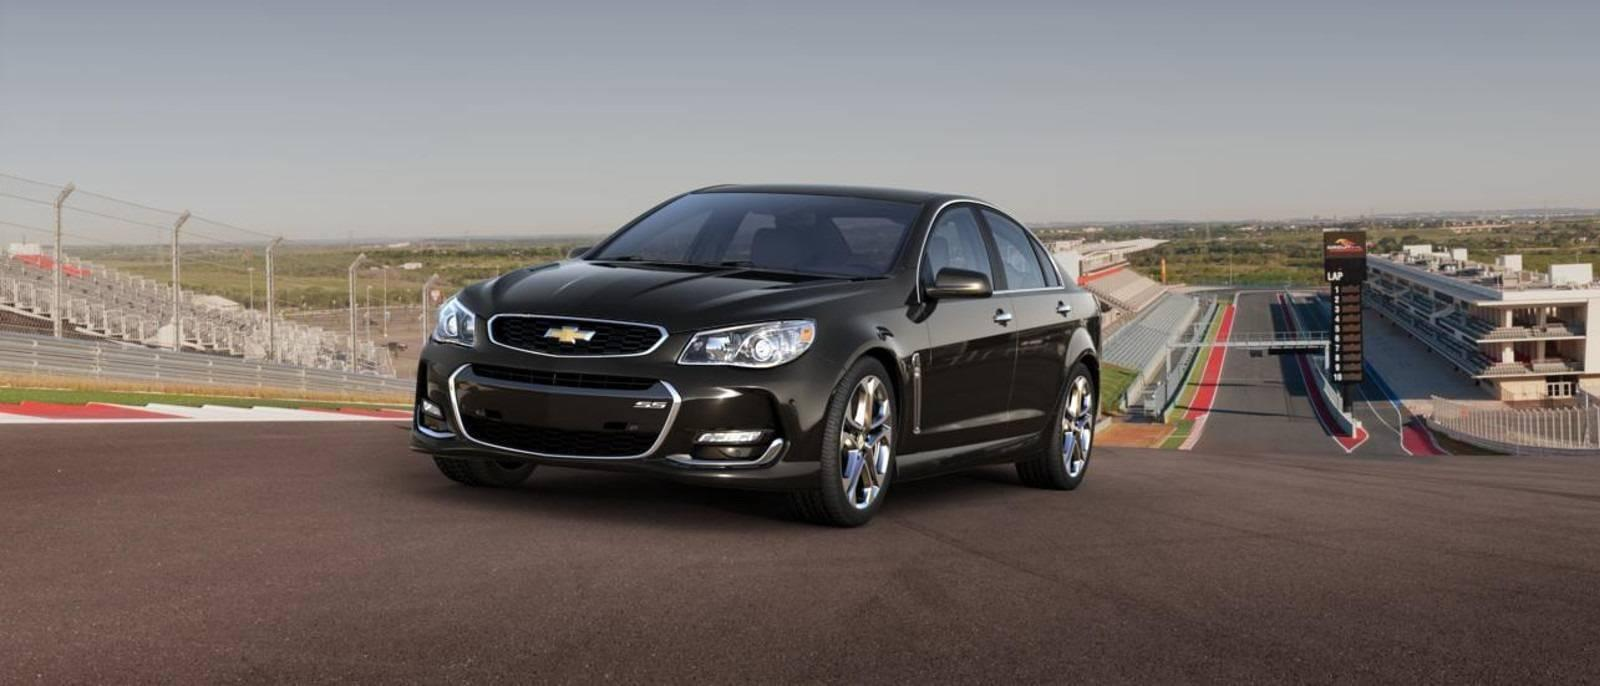 Patsy Lou Chevrolet Is A Flint Chevrolet Dealer And A New